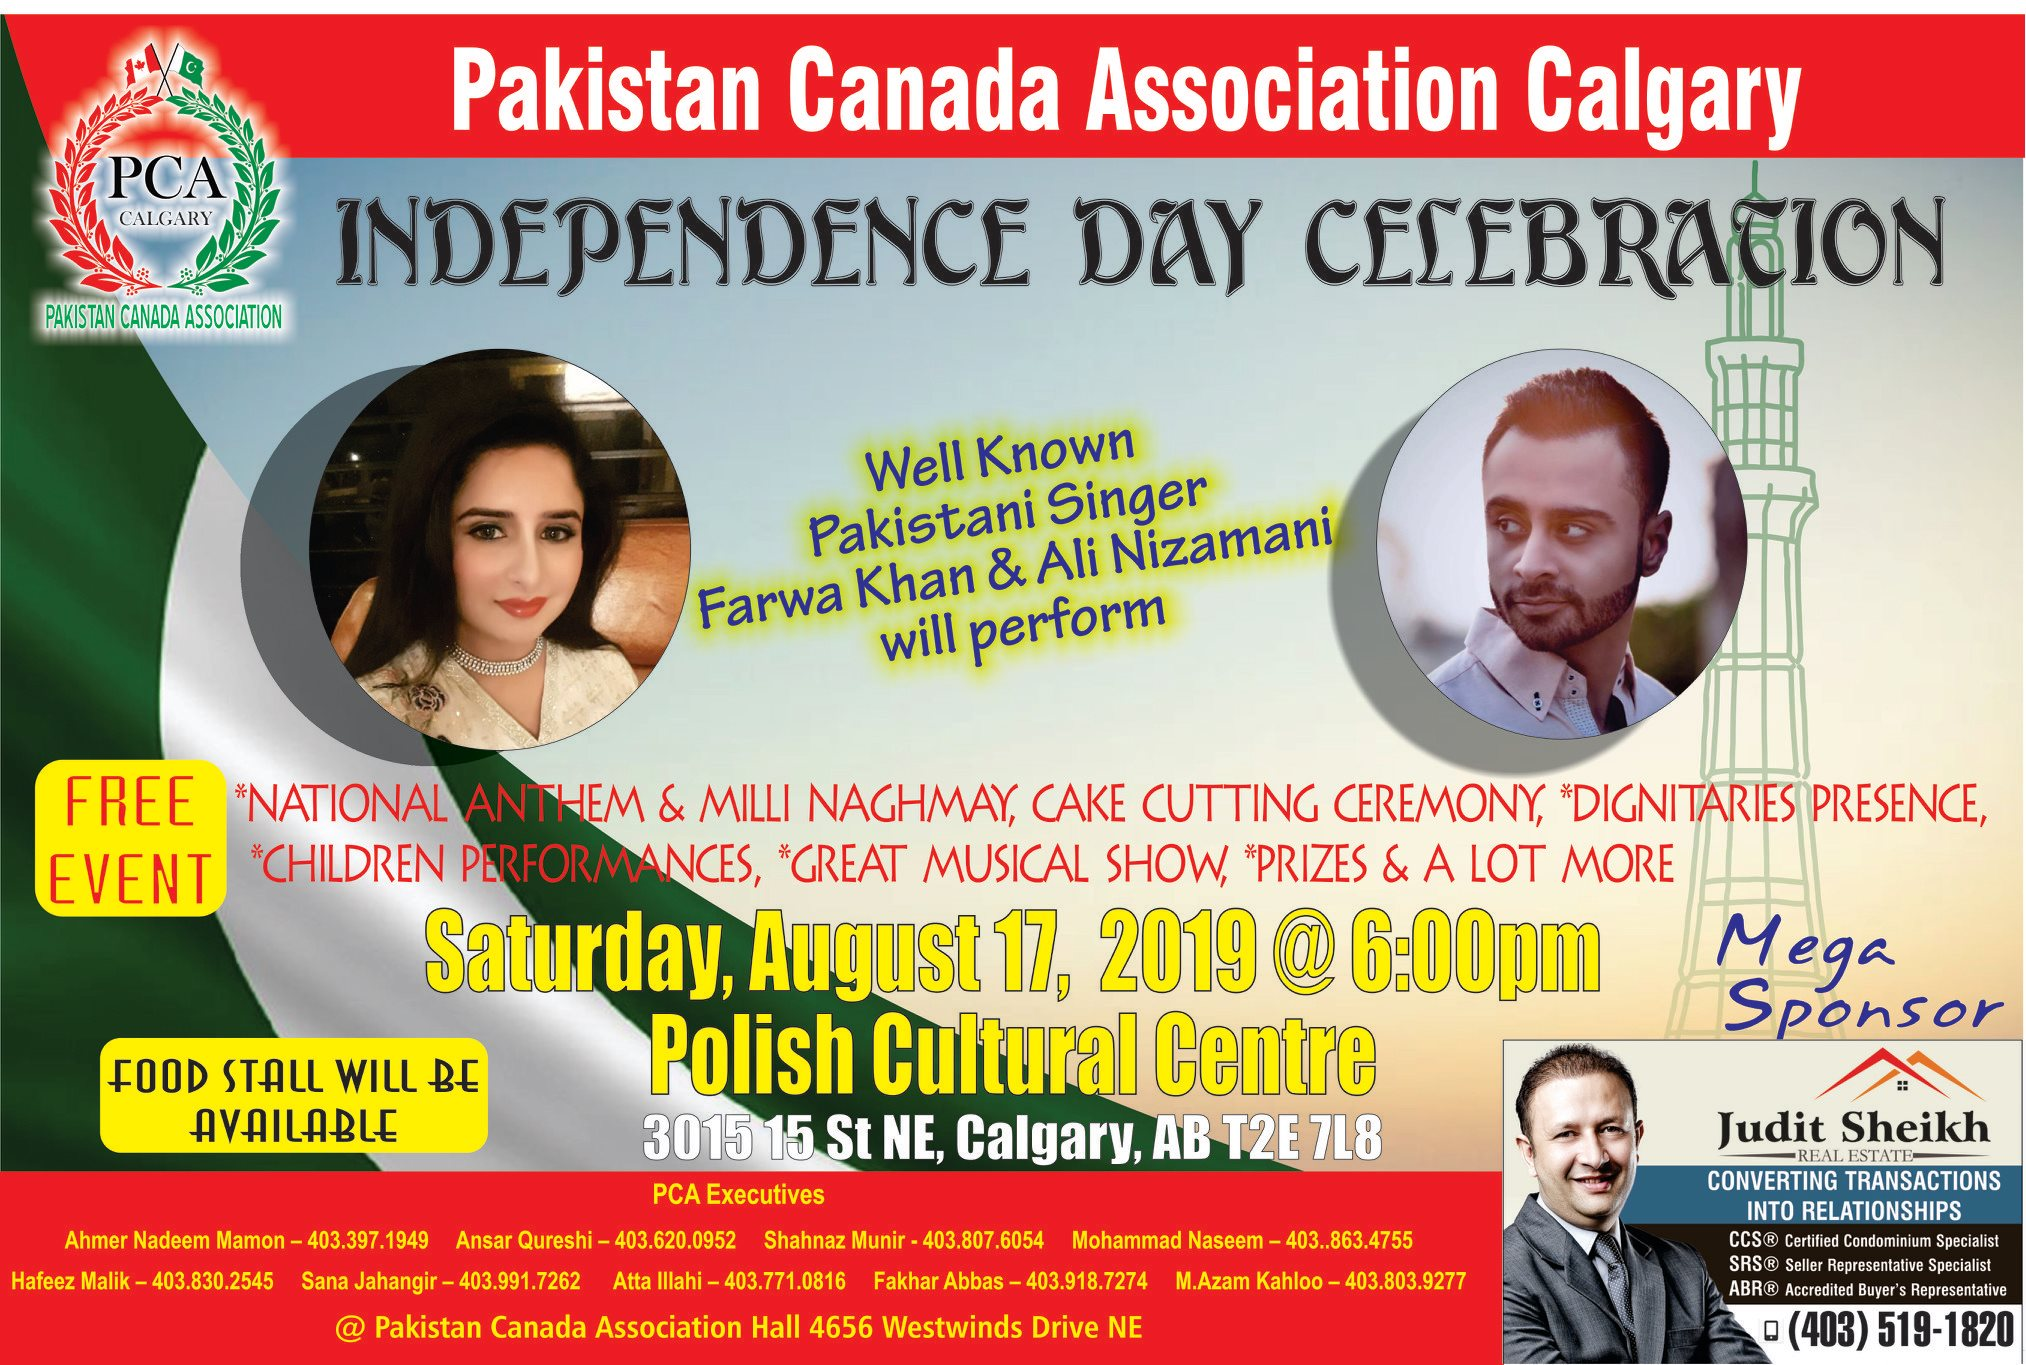 Pakistan Canada Association Independence Day Celebration